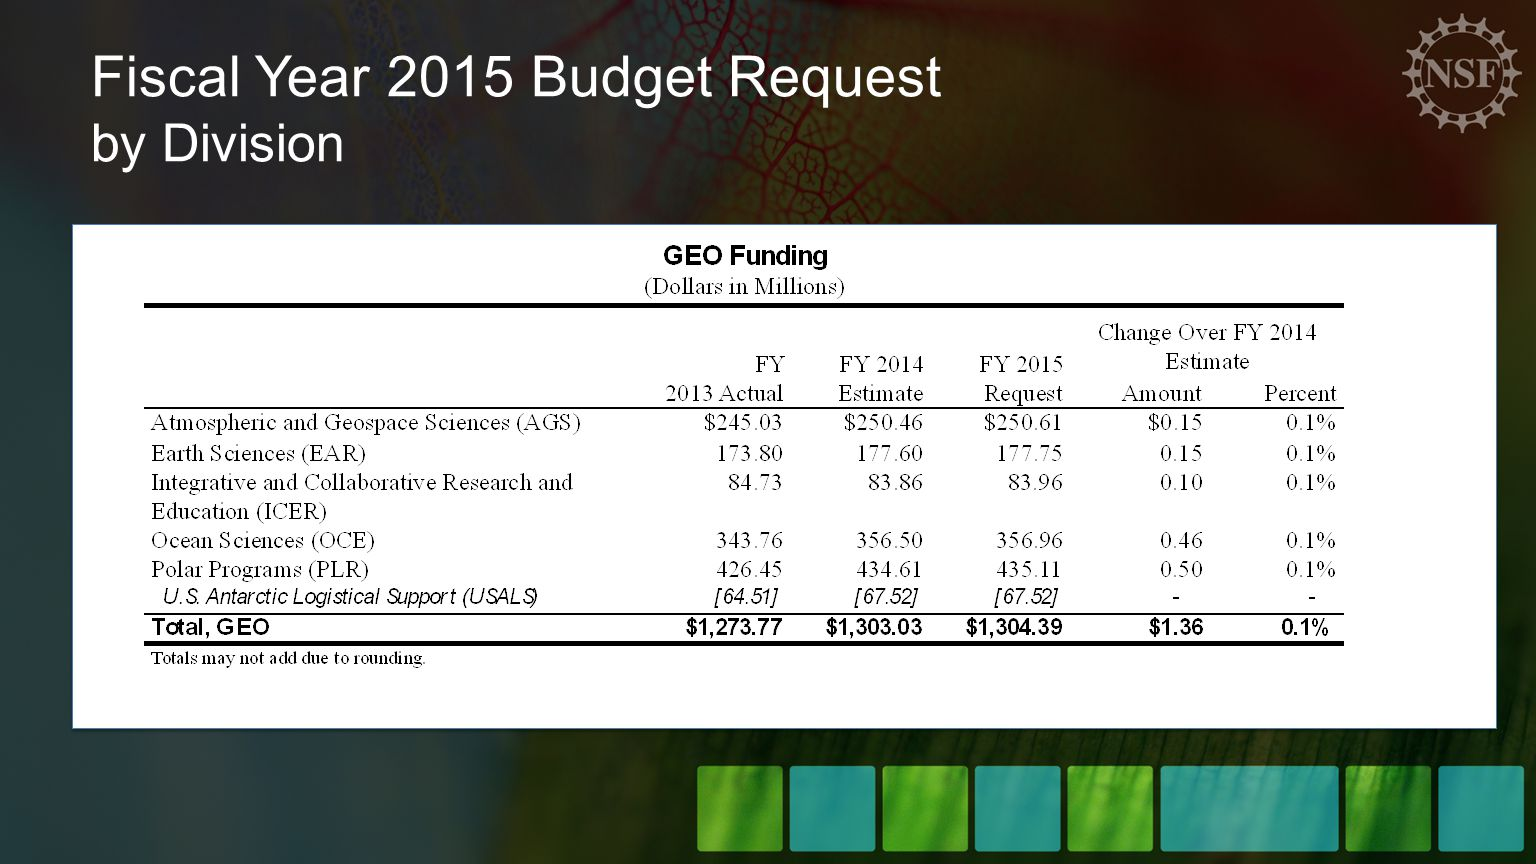 Fiscal Year 2015 Budget Request by Division